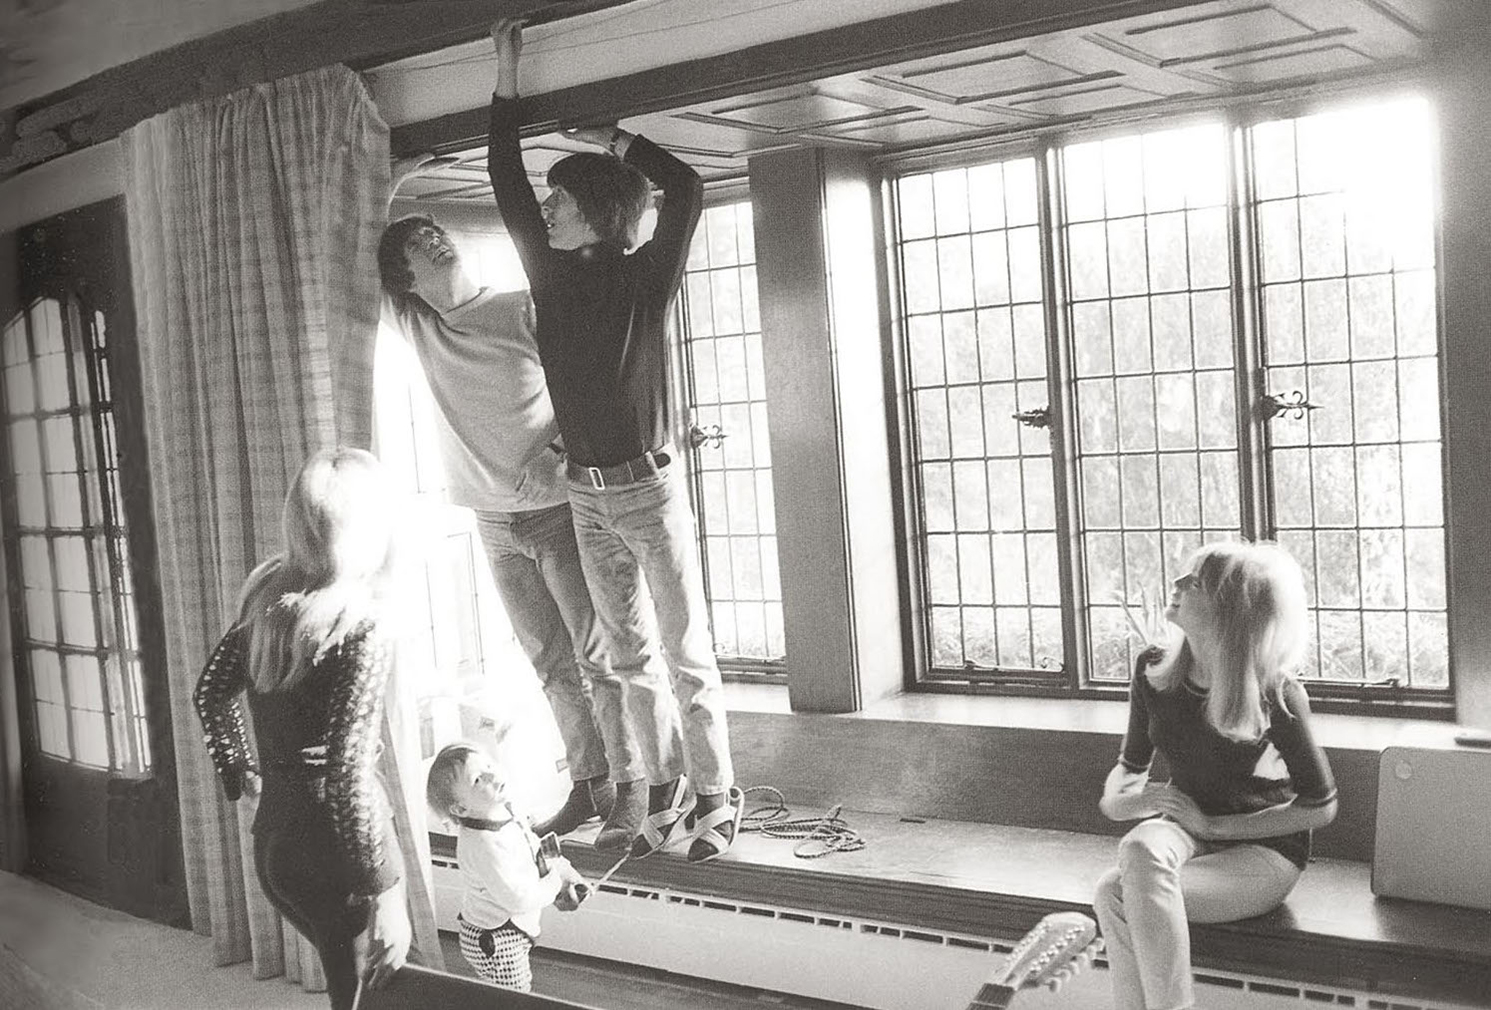 John Lennon and Ringo Starr hanging curtains inside Kenwood, circa 1964. Via Knight Frank